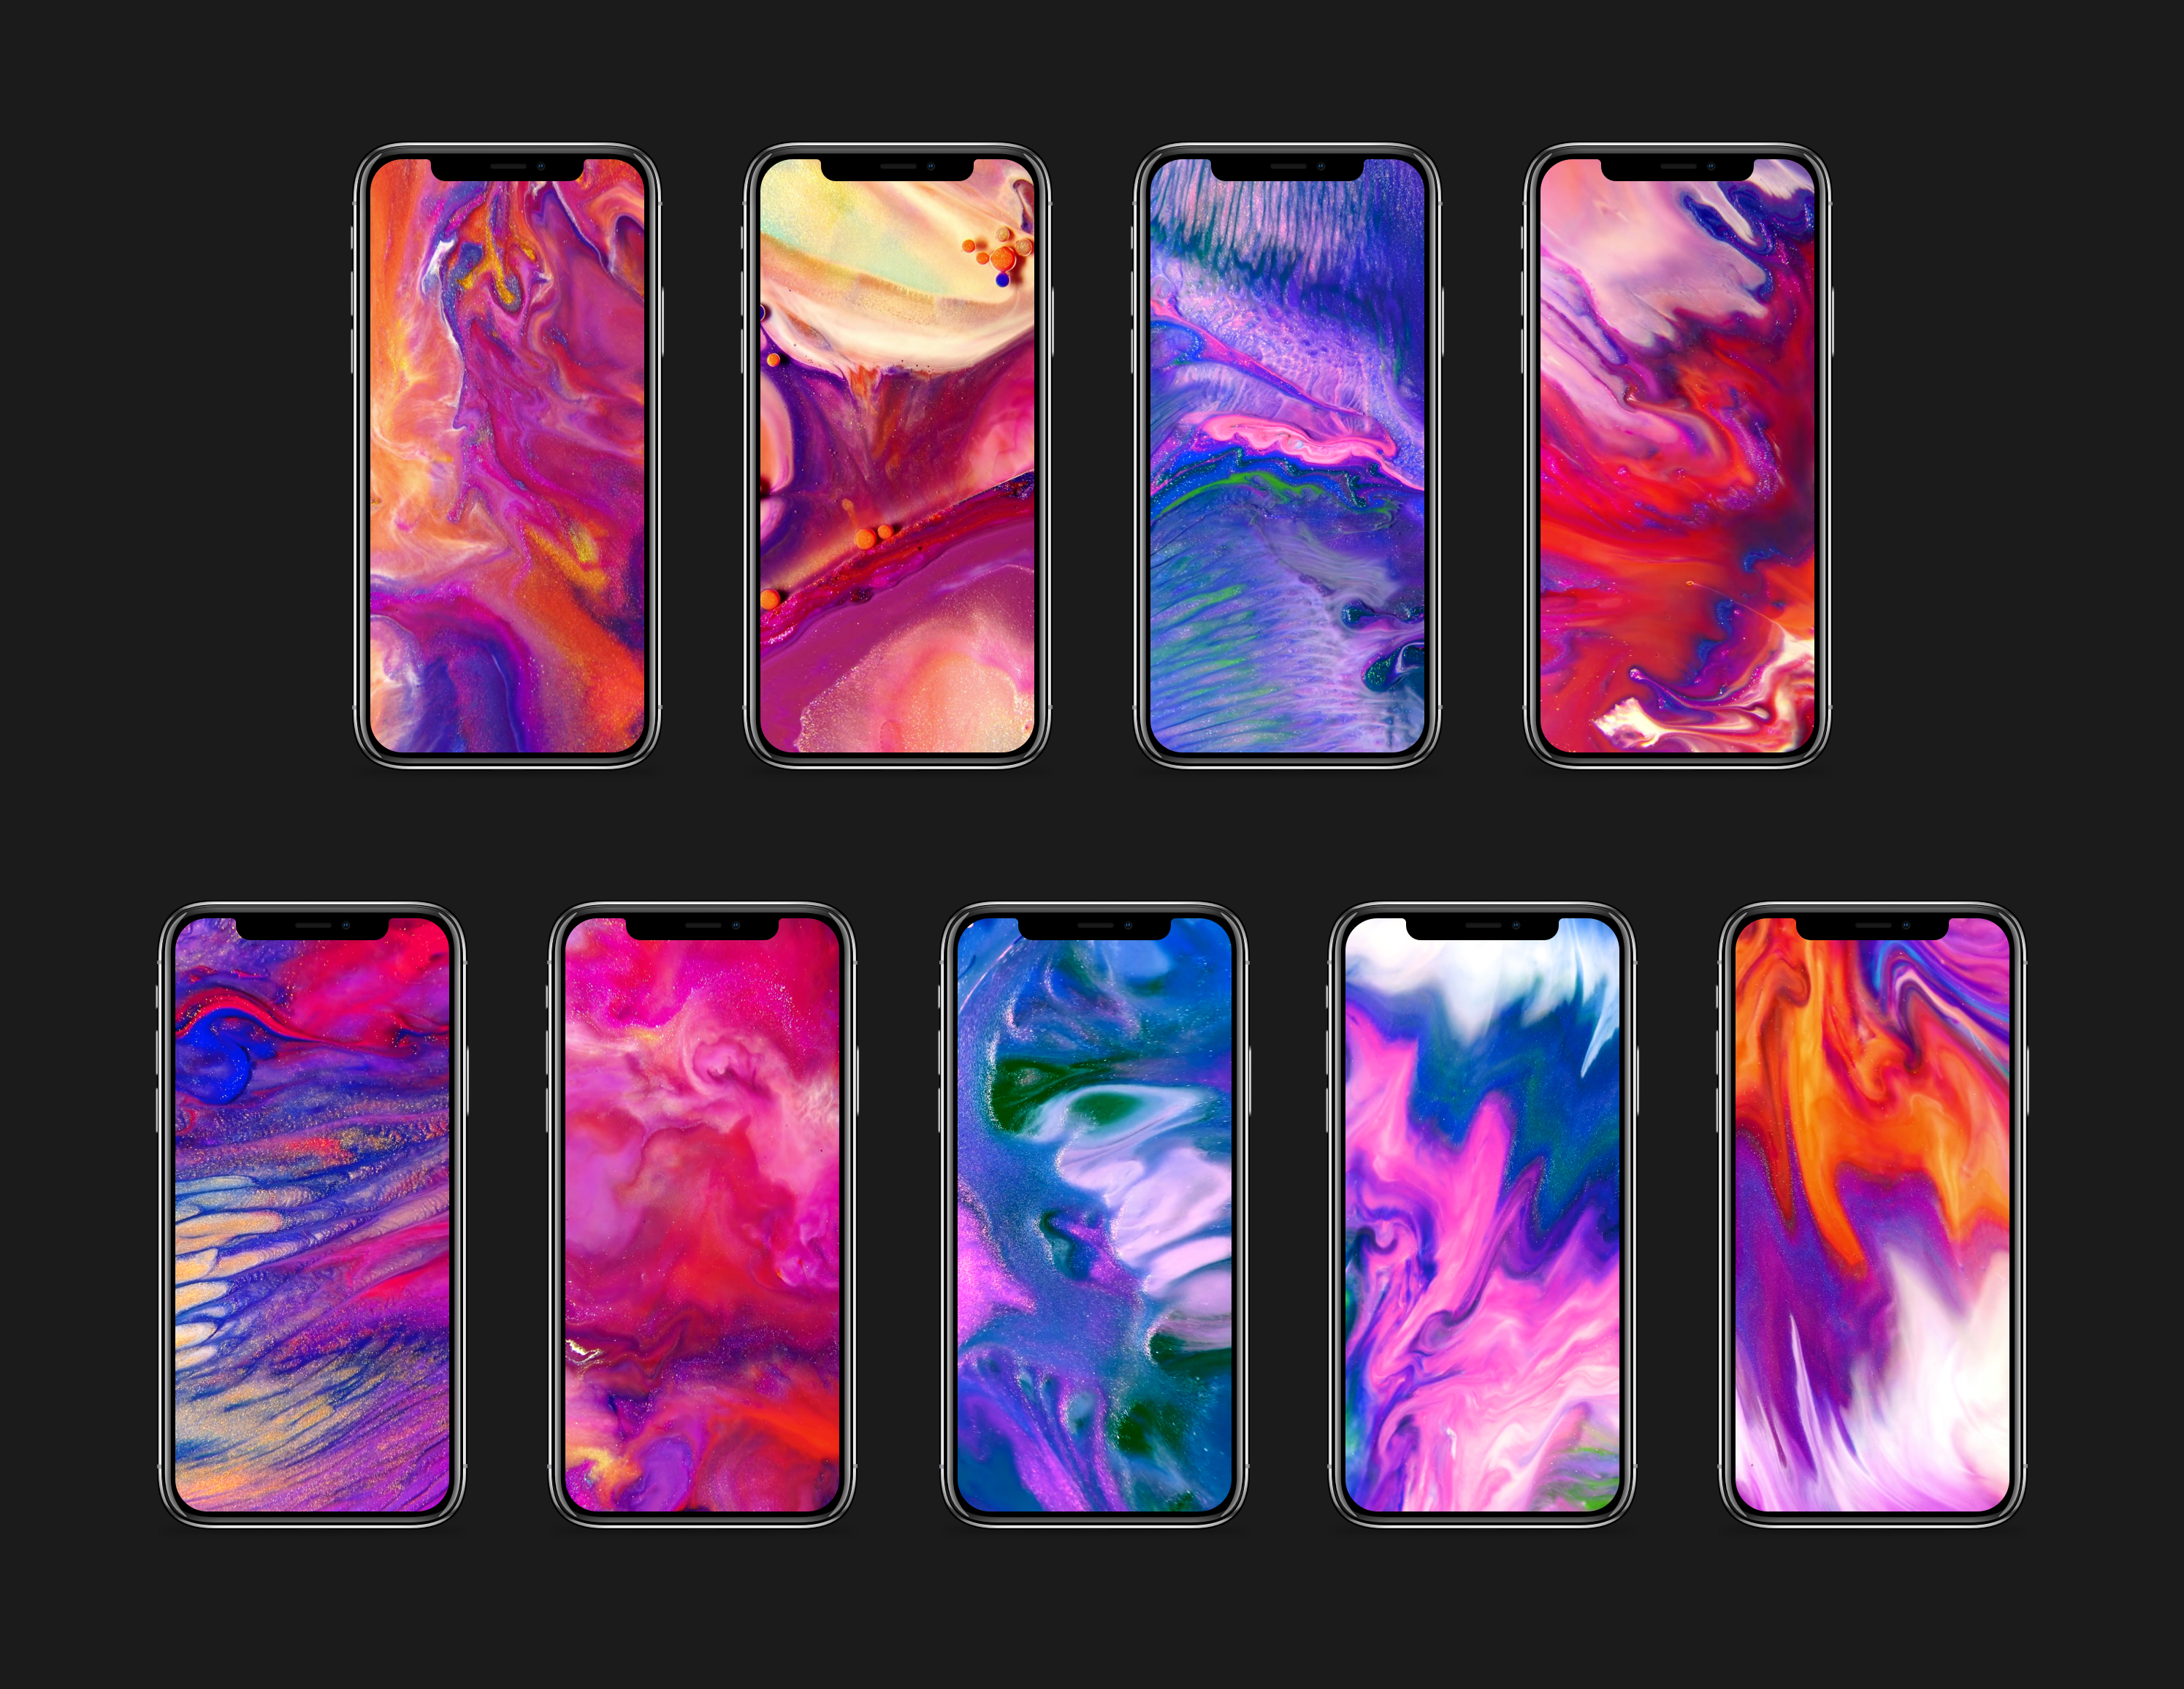 Iphone Wallpaper: IPhone X Marketing Video Wallpapers